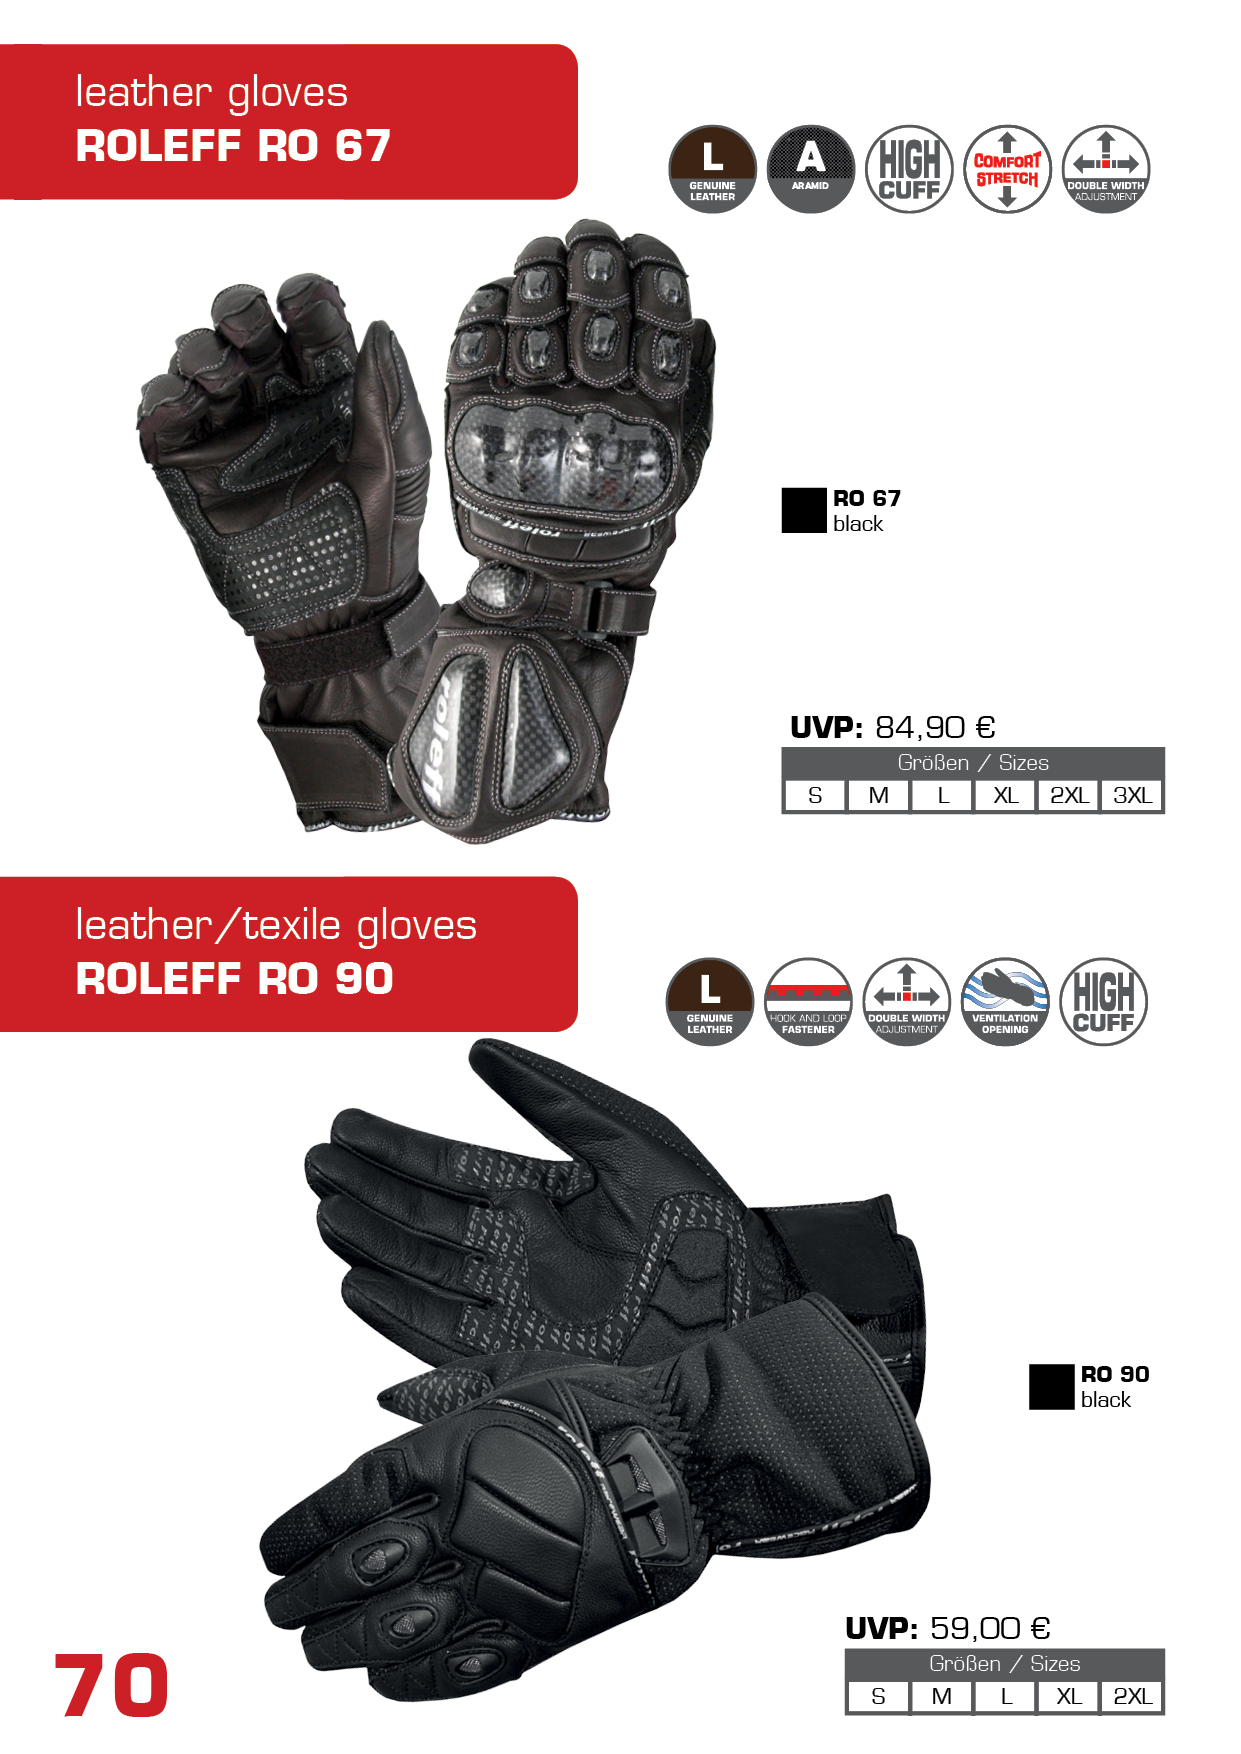 Motorcycle gloves double cuff - Roleff_katalog_2017_68